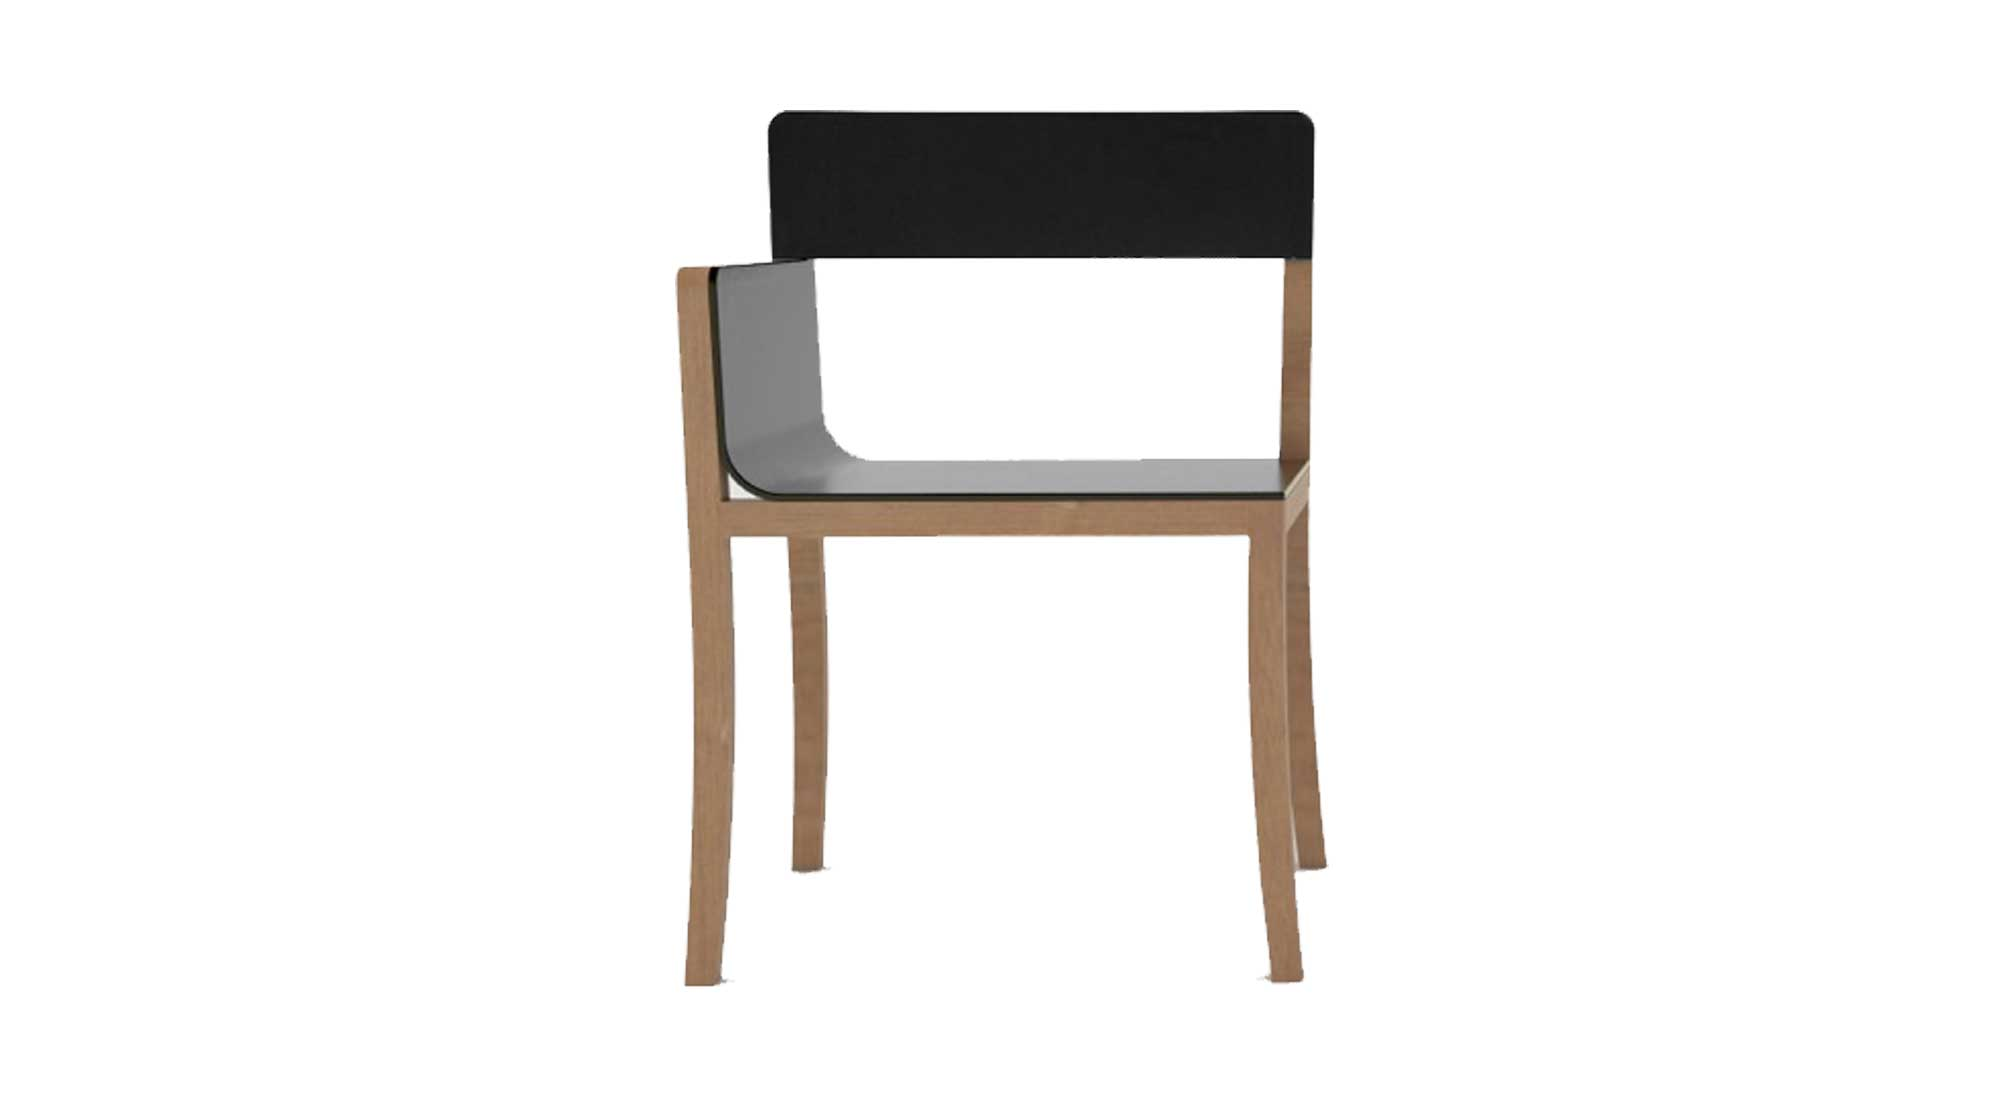 li-lith Chair by Gregor Eichinger for rosconi